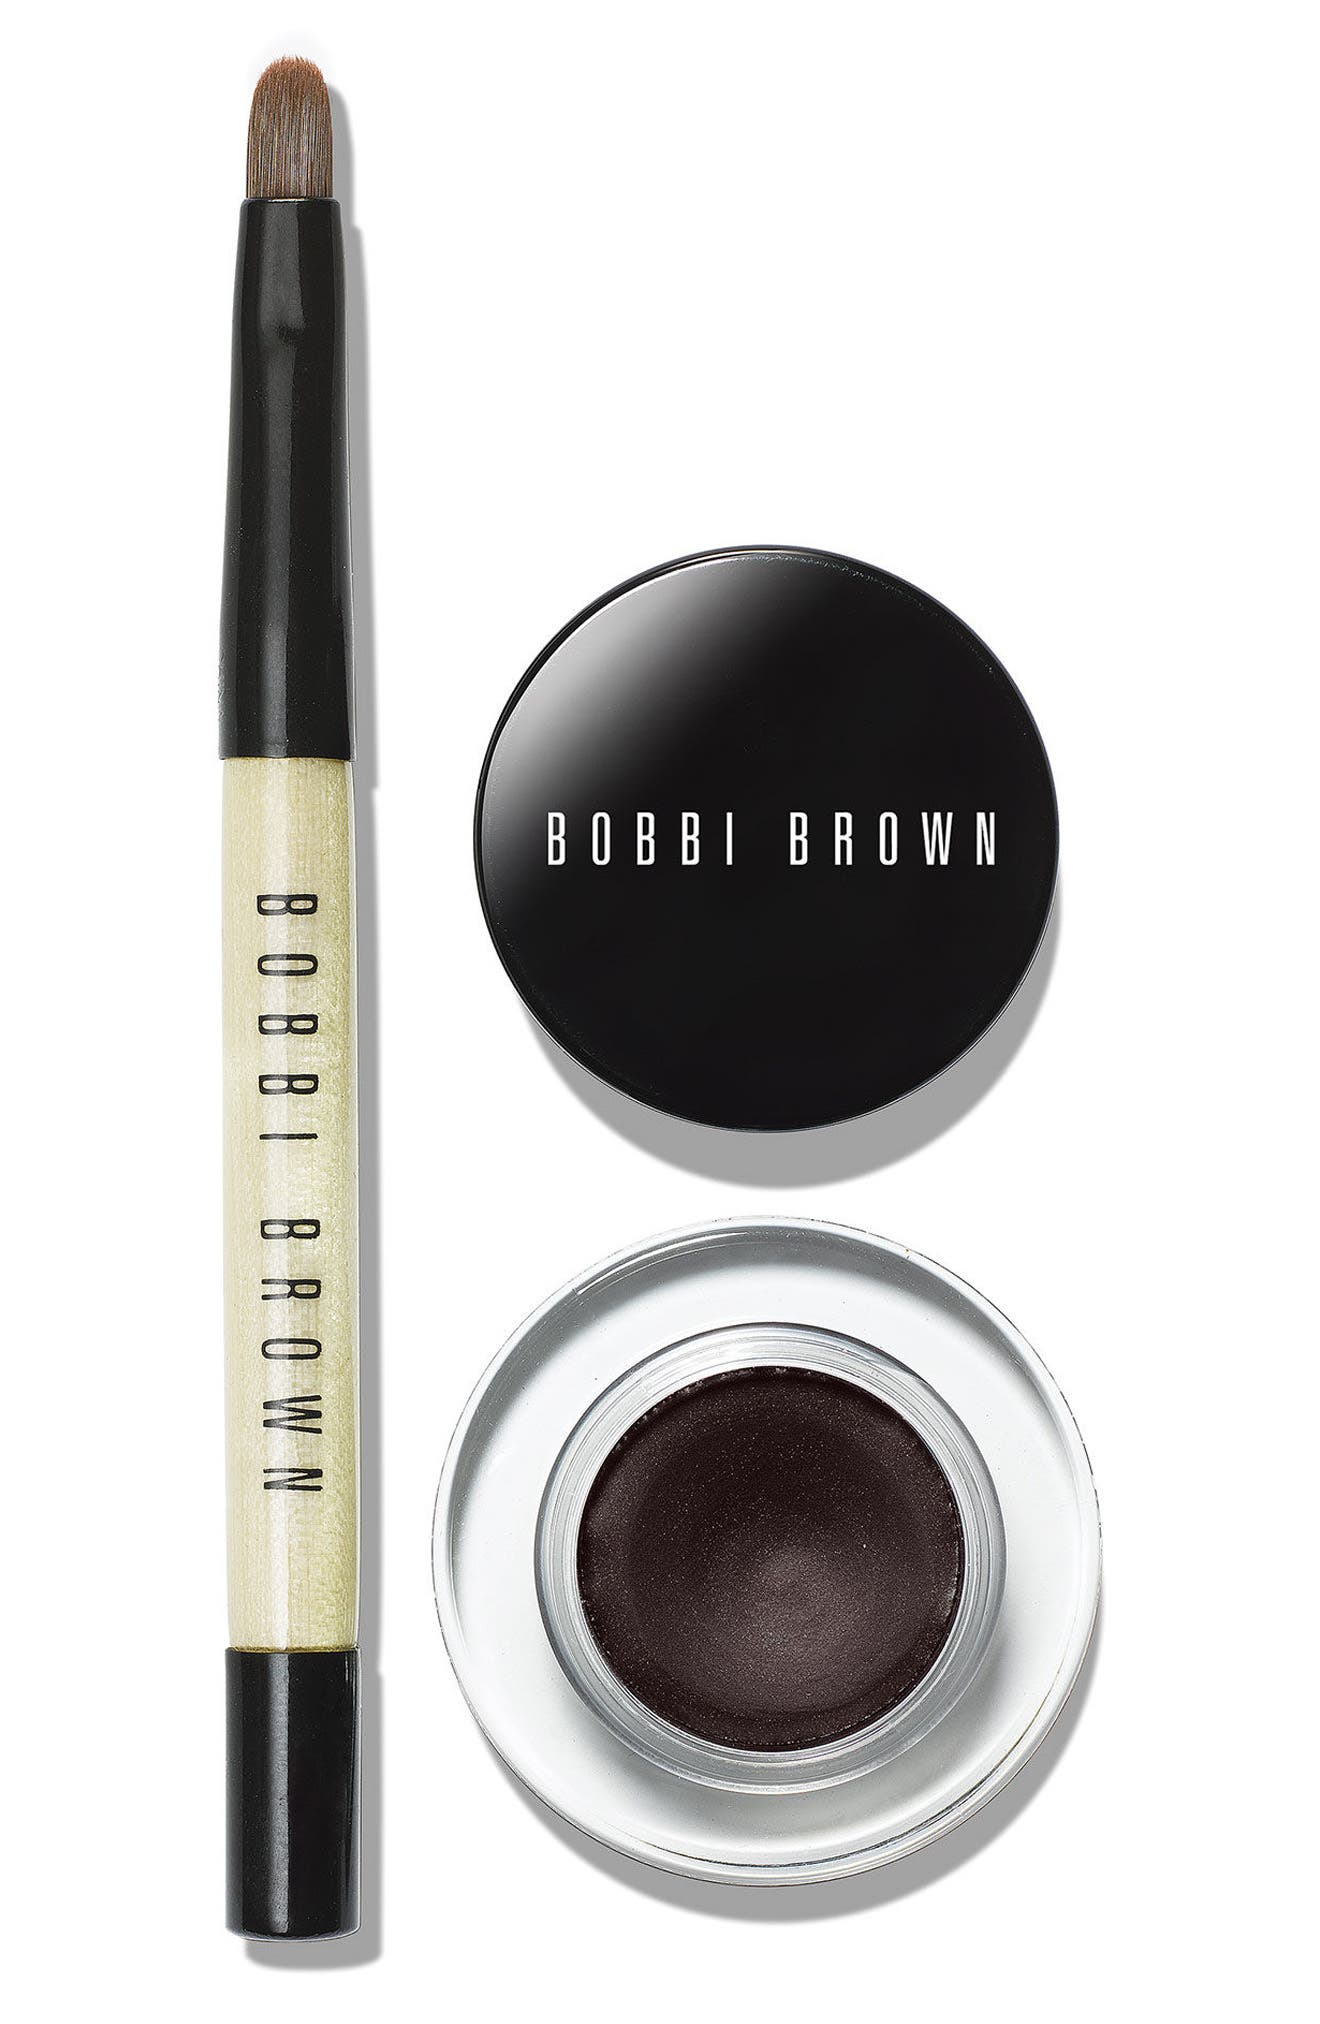 Main Image - Bobbi Brown Bobbi to Go Mini Long-Wear Gel Eyeliner Duo ($27 Value)